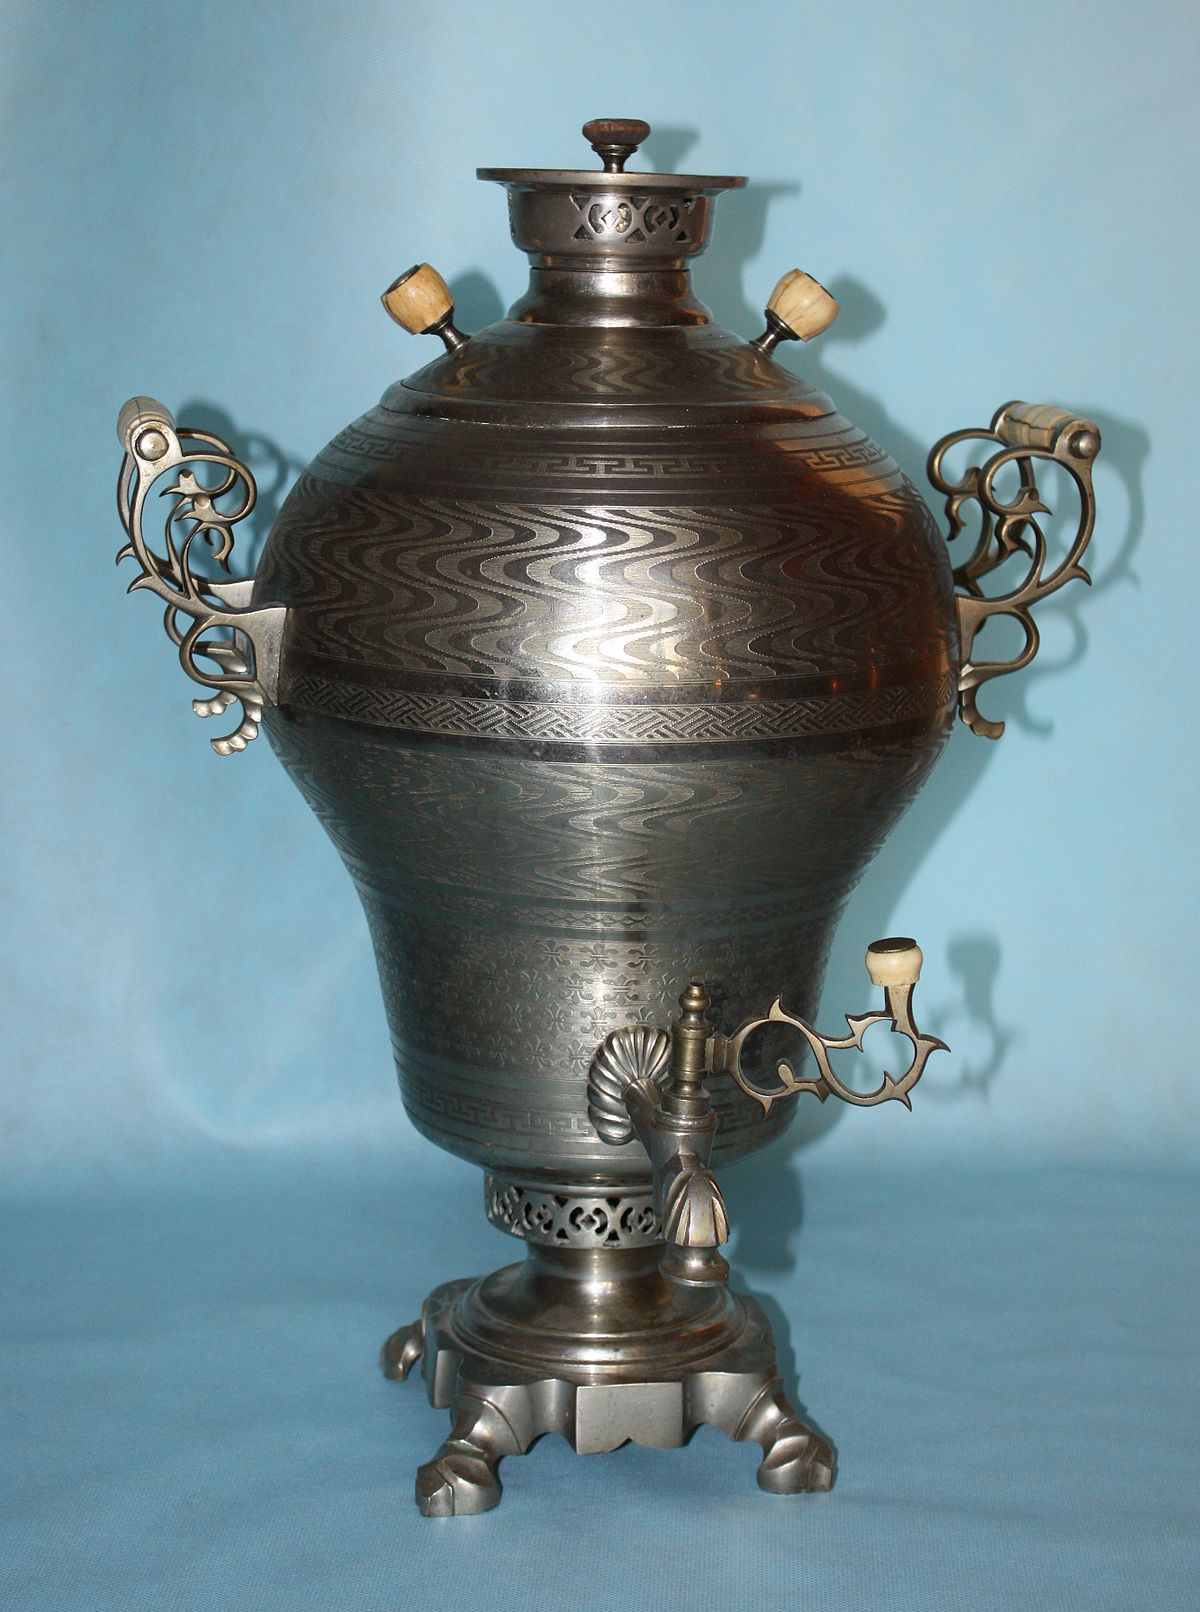 Samovar - Wikipedia